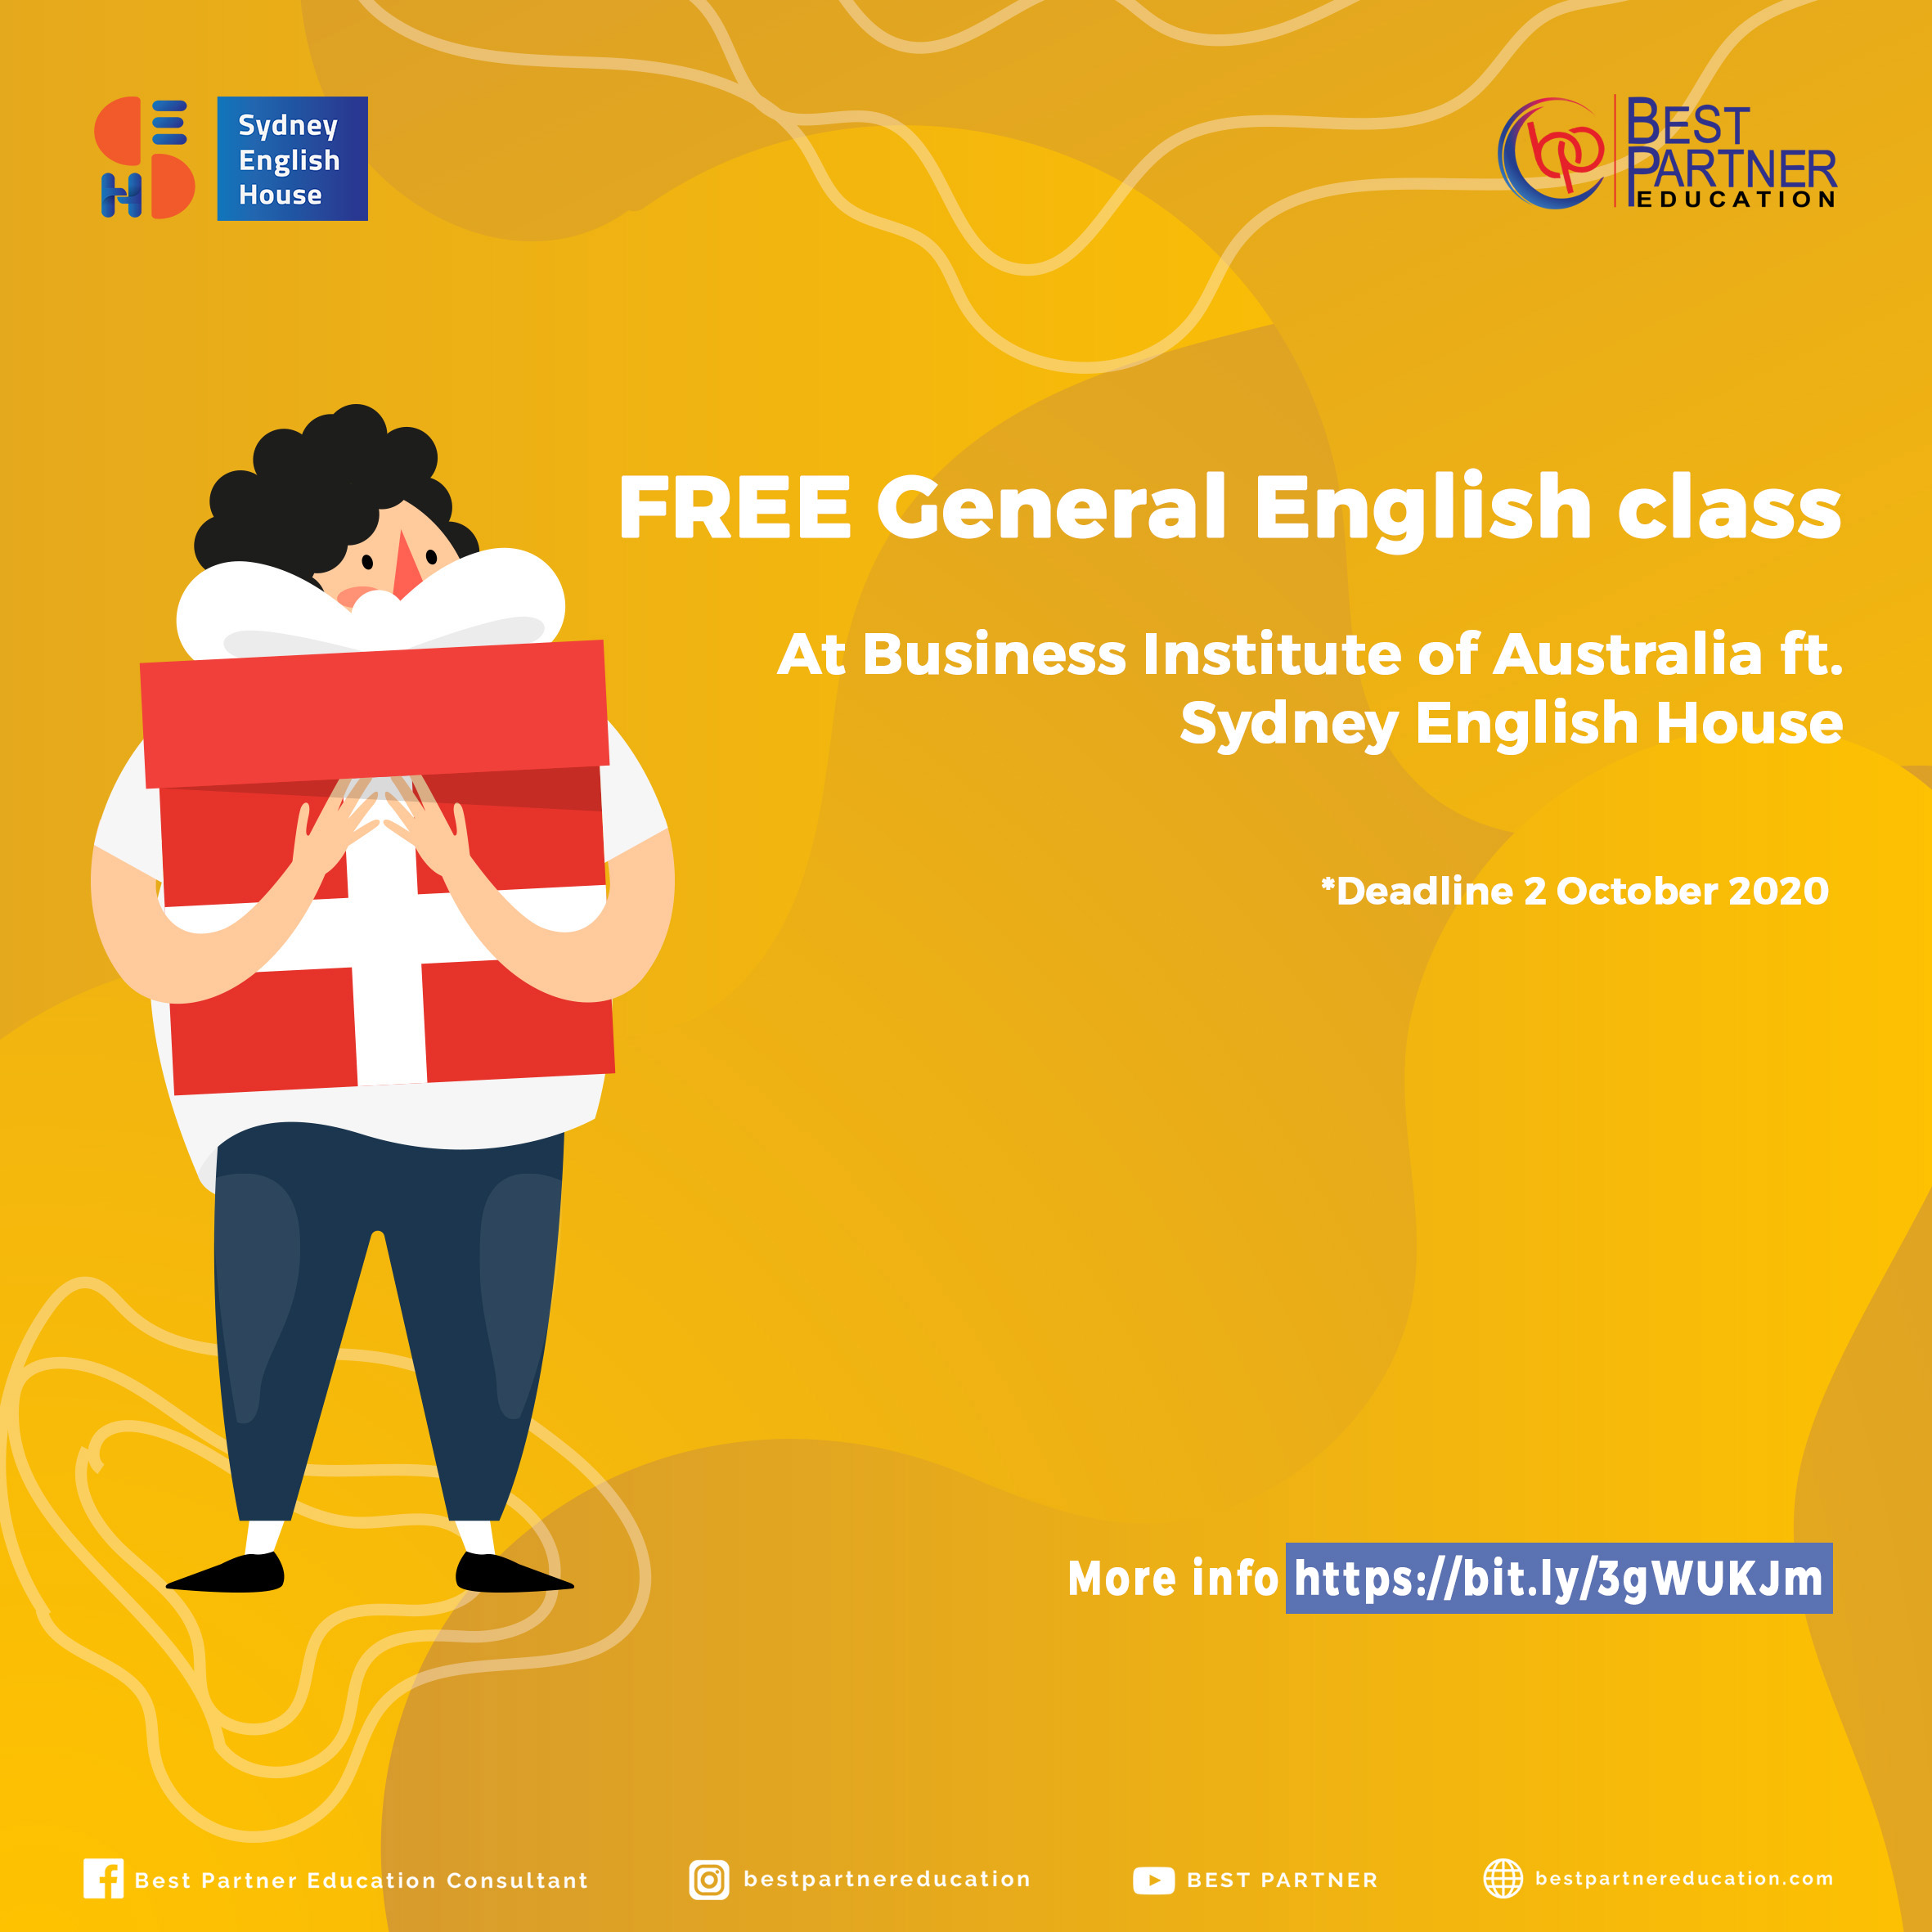 Business Institute of Australia ft. Sydney English House. FREE General English Class!